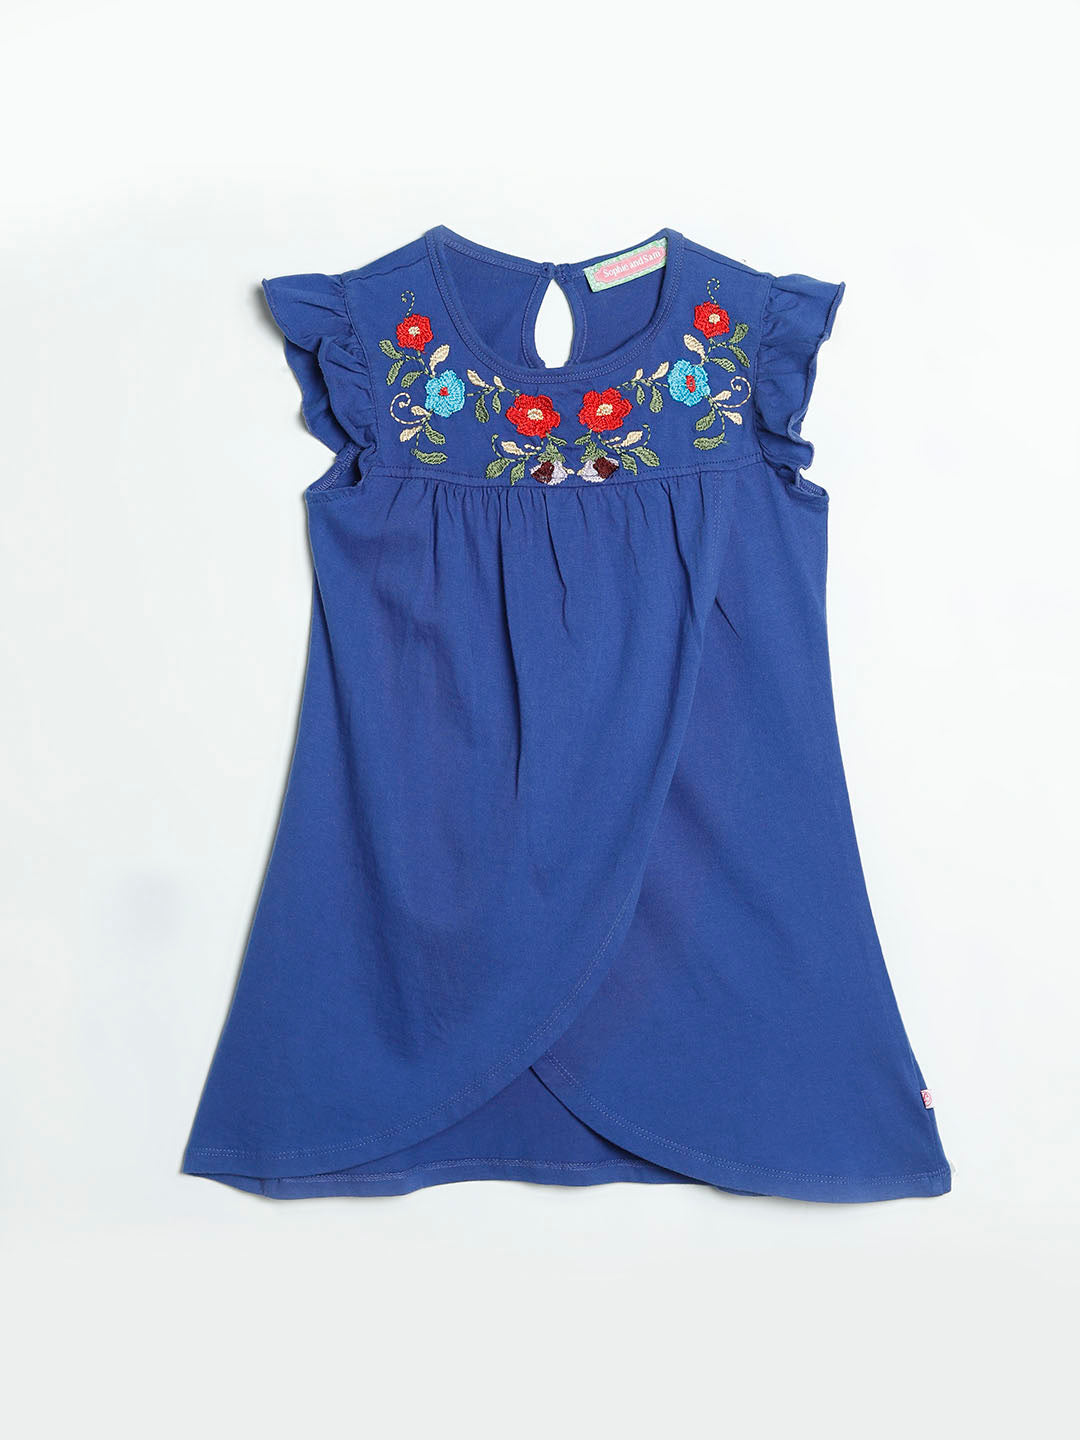 Slub Jersey Dress with floral embroidery